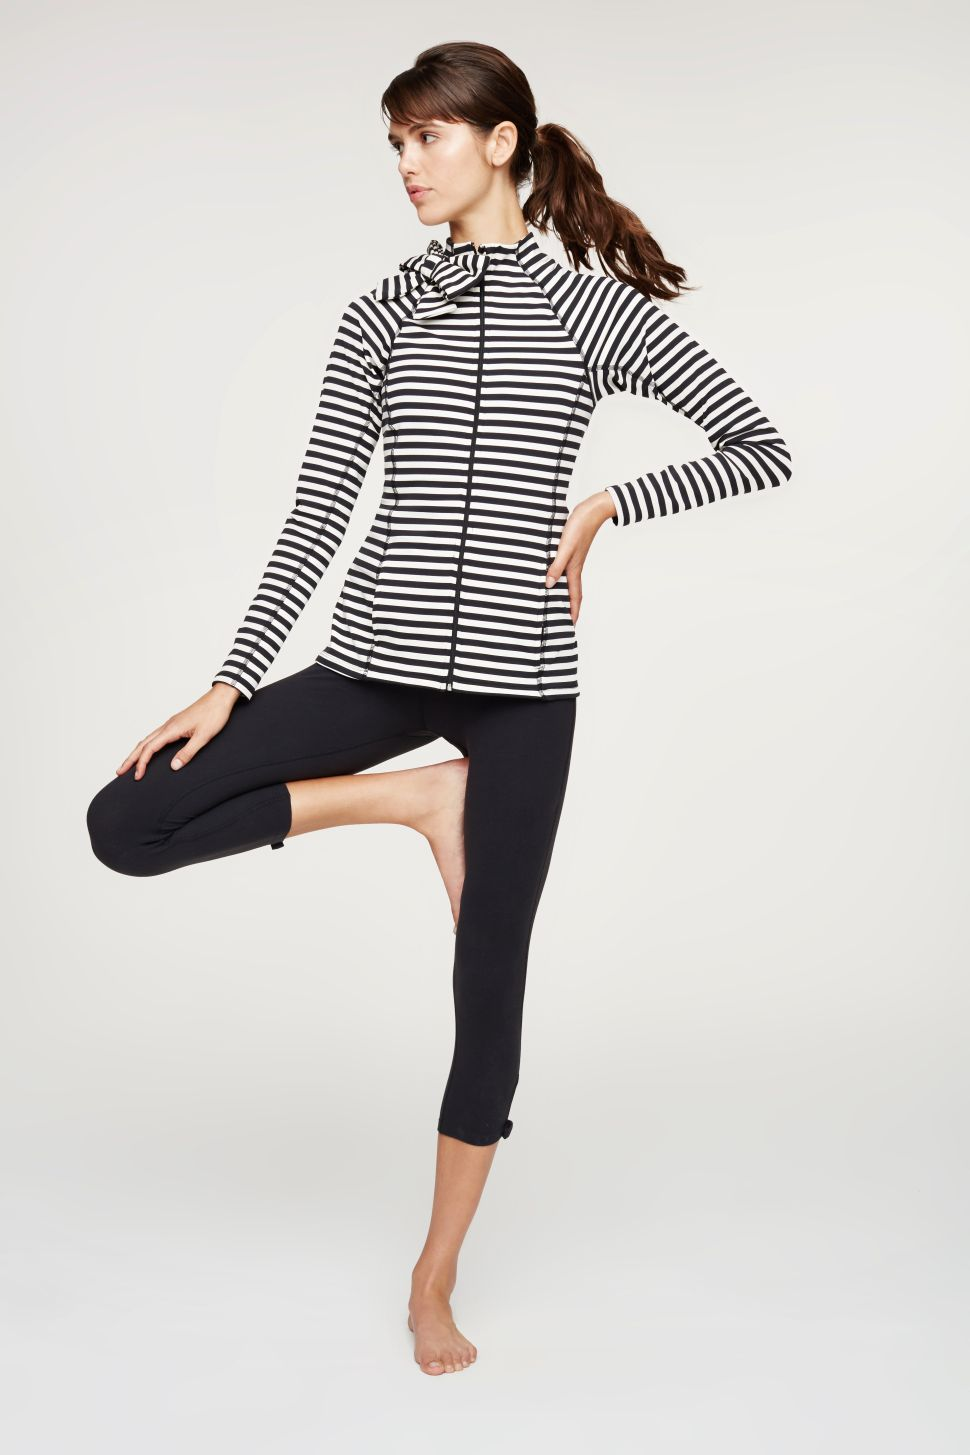 Kate Spade Introduces the Preppiest Athleisure Collection Ever